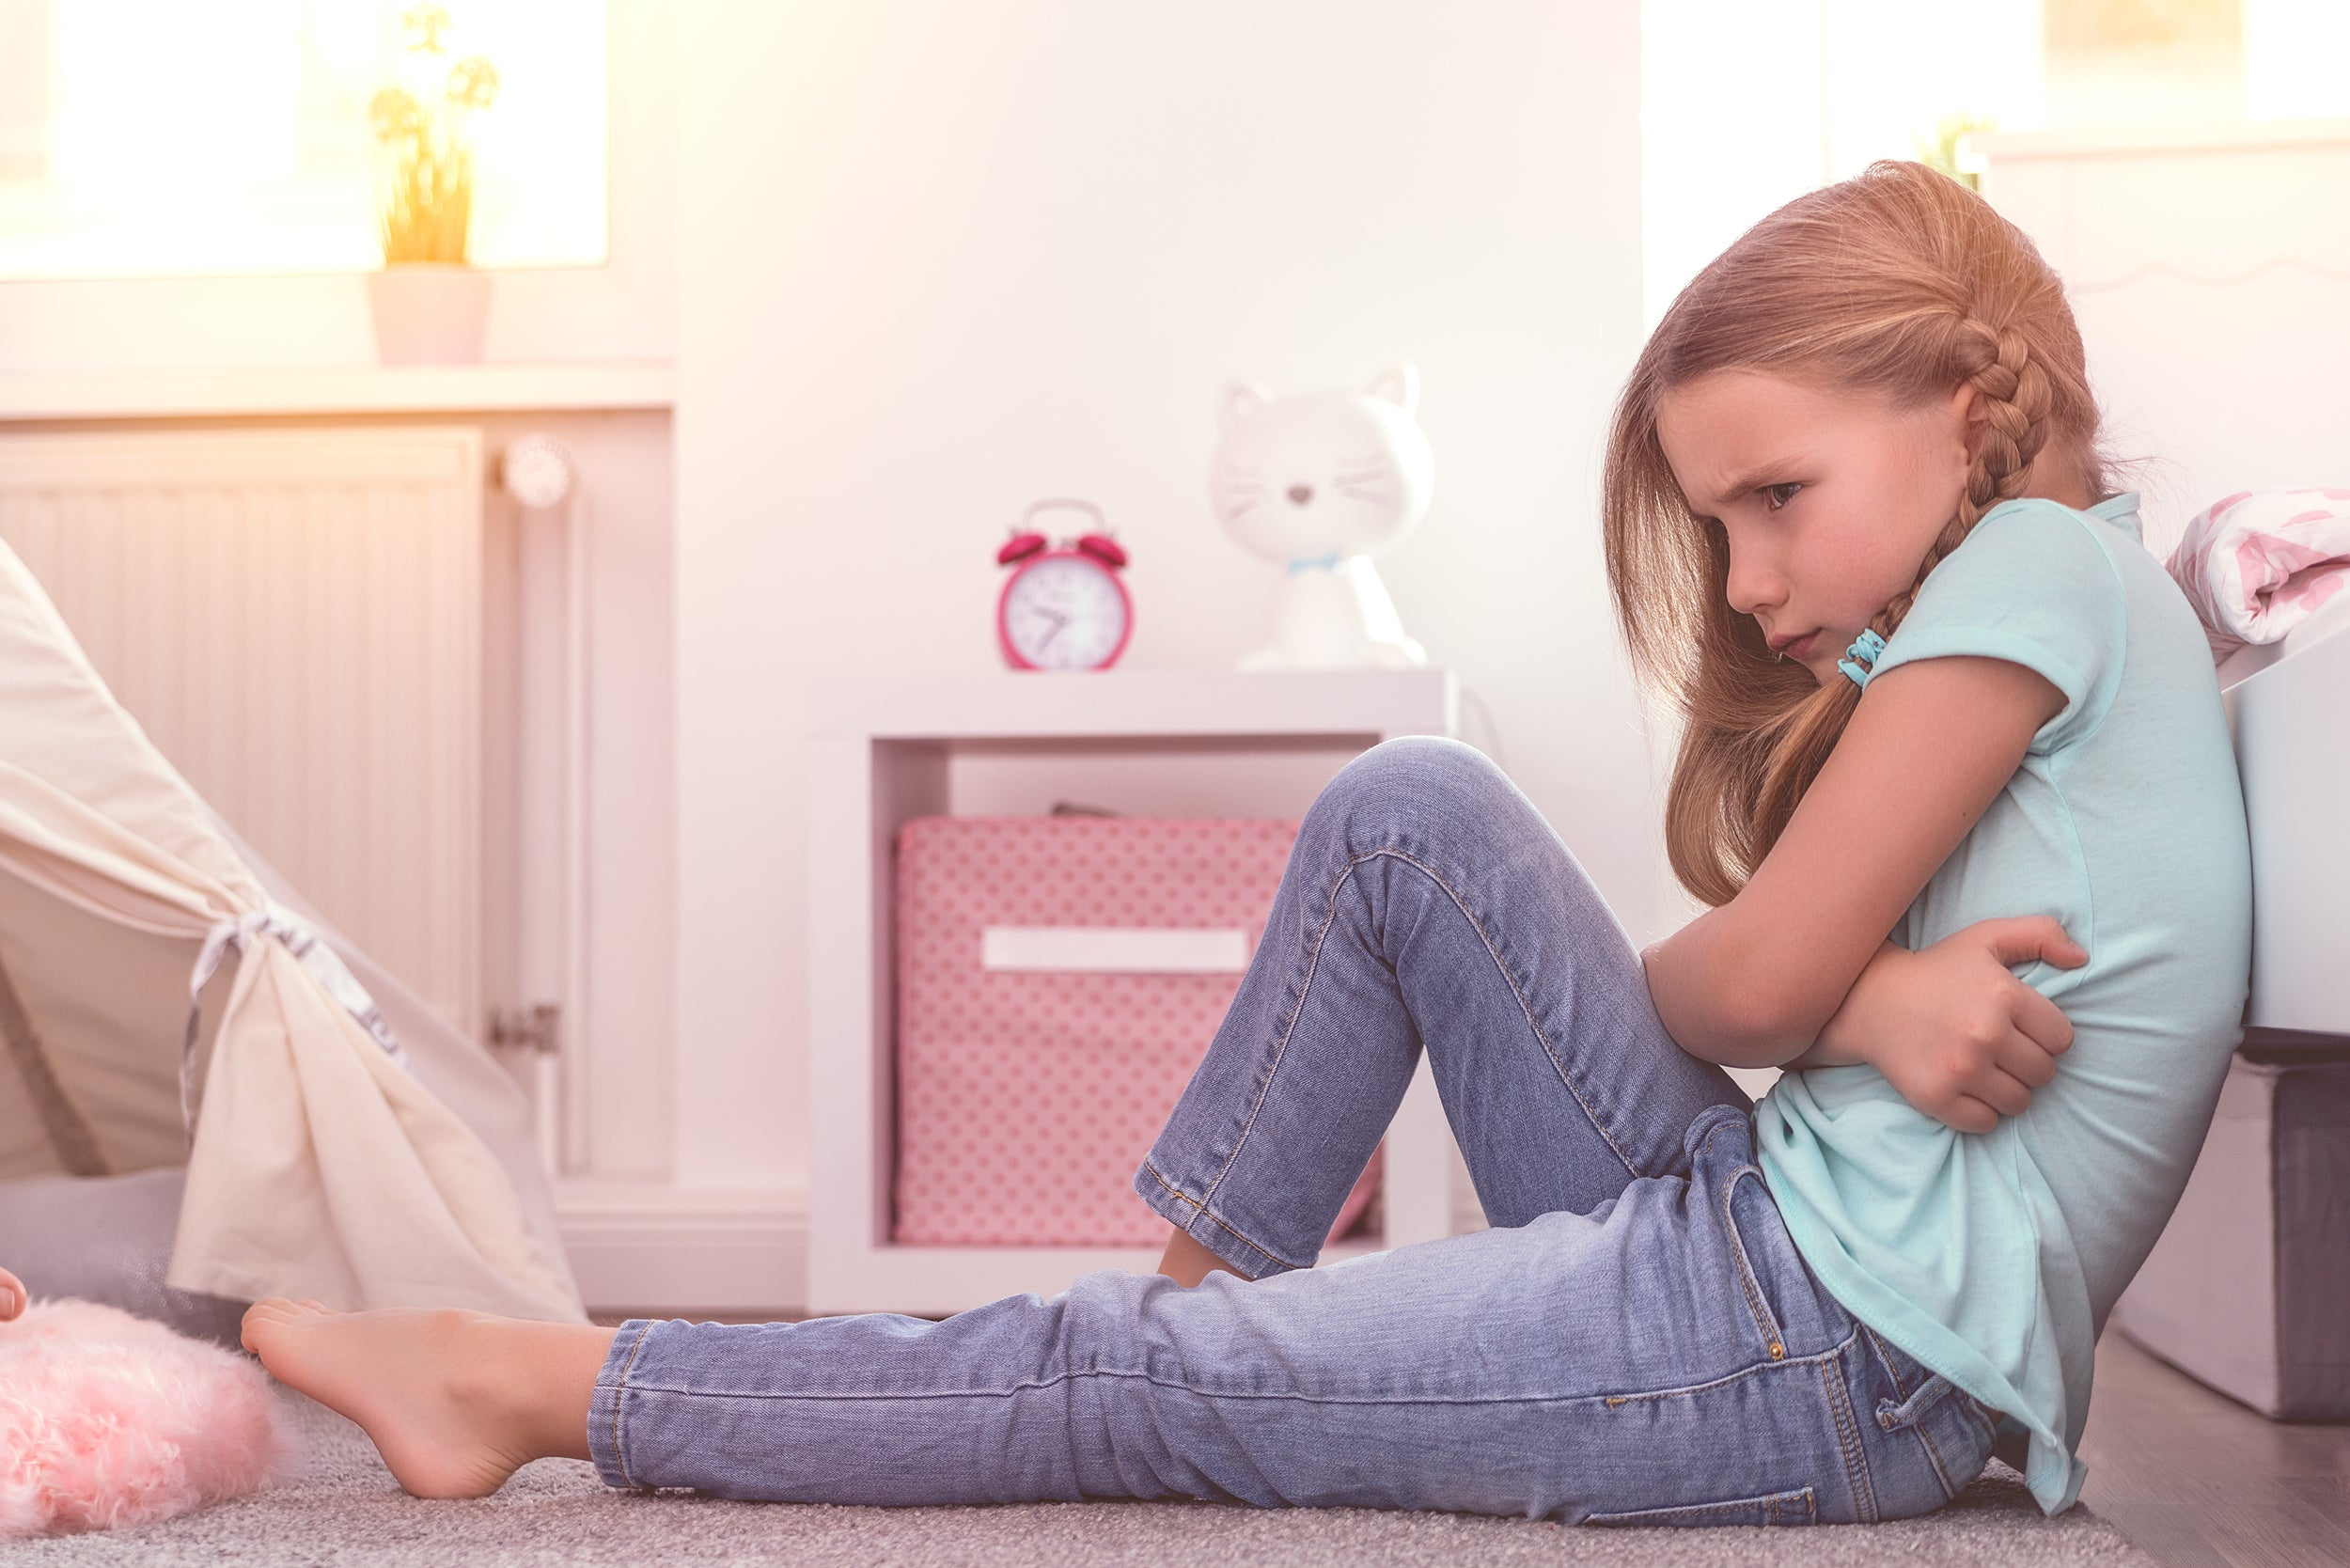 5 Signs of Stress in Children - overreacting to small matters